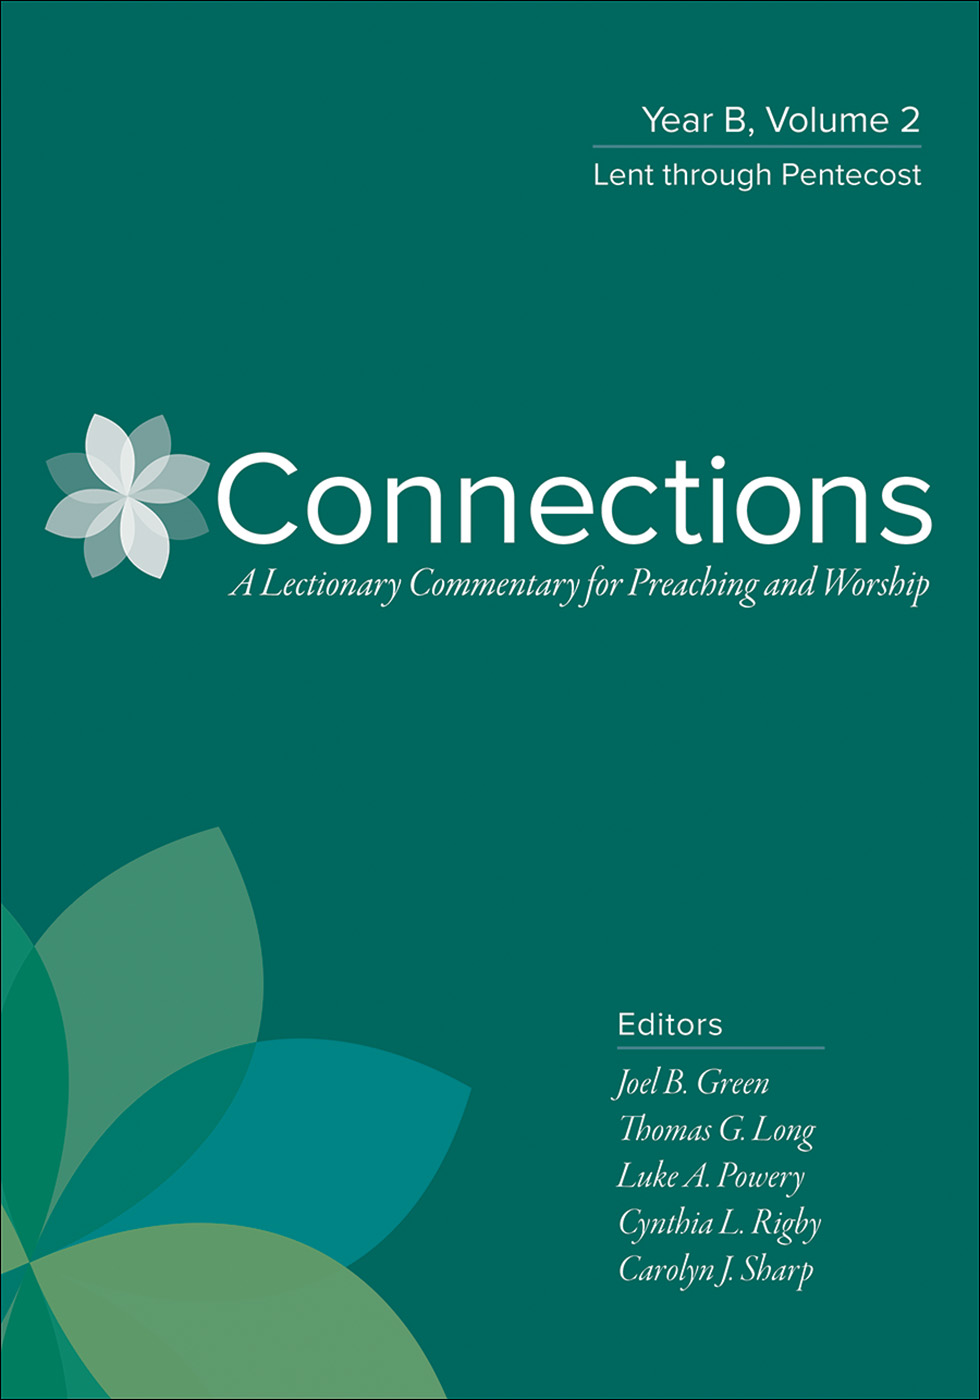 Connections: Year B, Volume 2